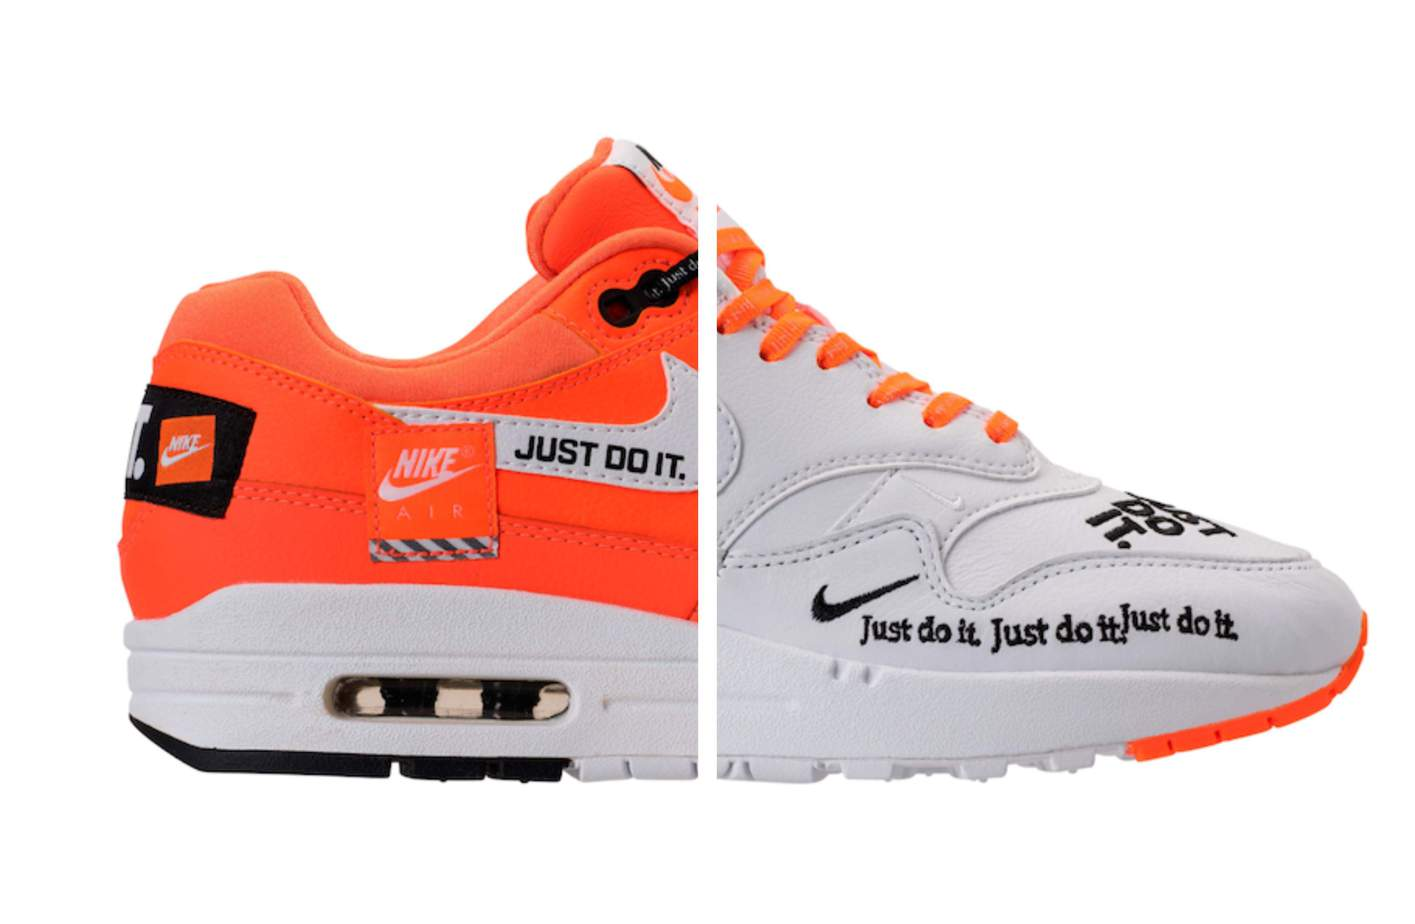 designer fashion 367e1 2ed94 Nikes Air Max line has been holding down the brand since the early 90s.  With so many memorable promotions for the coveted series, Nike has decided  to slap ...